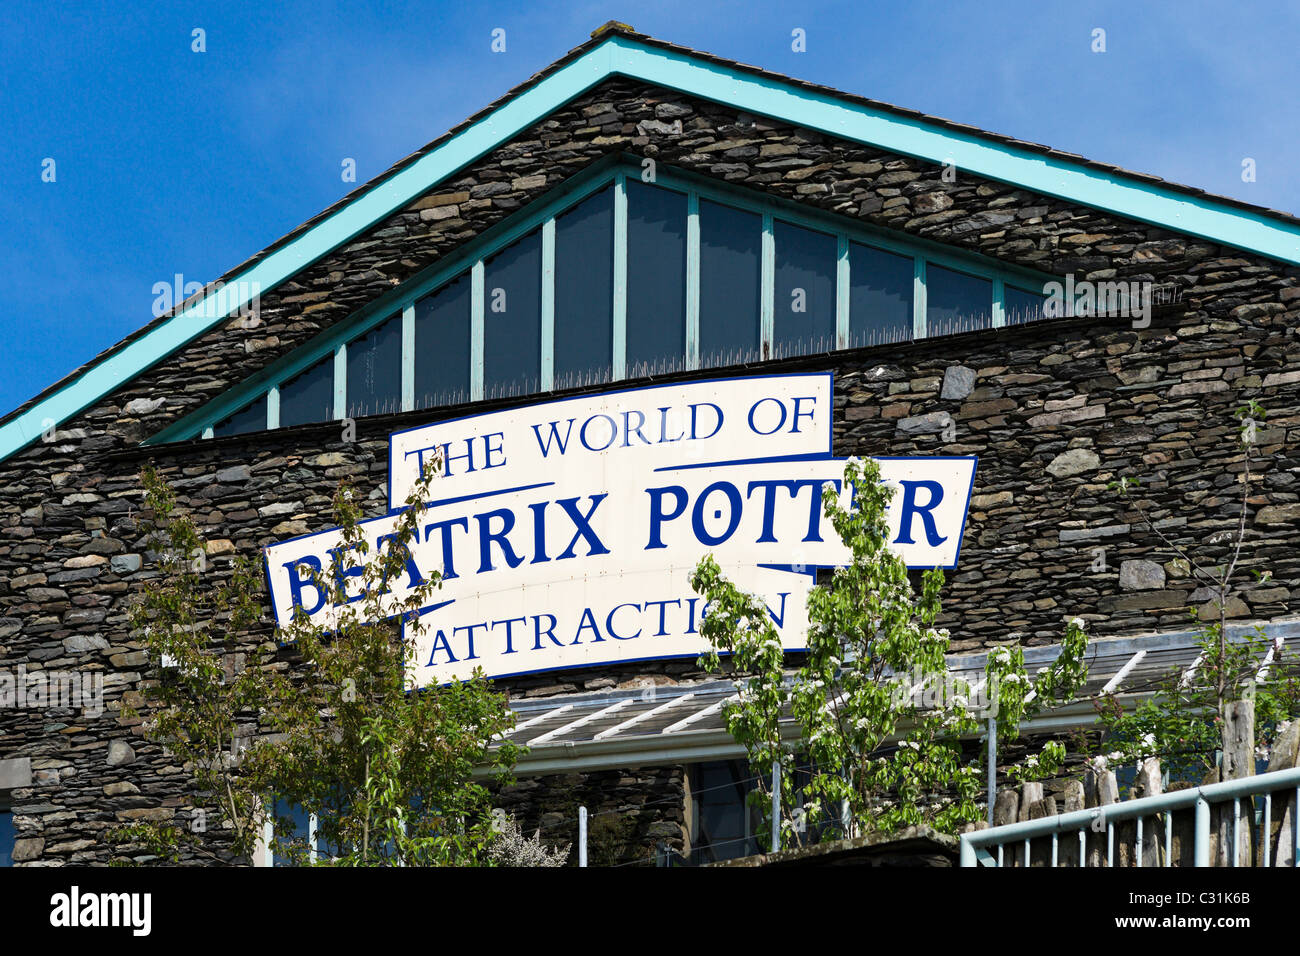 The World of Beatrix Potter Attraction in Bowness, Lake Windermere, Lake District National Park, Cumbria, UK - Stock Image